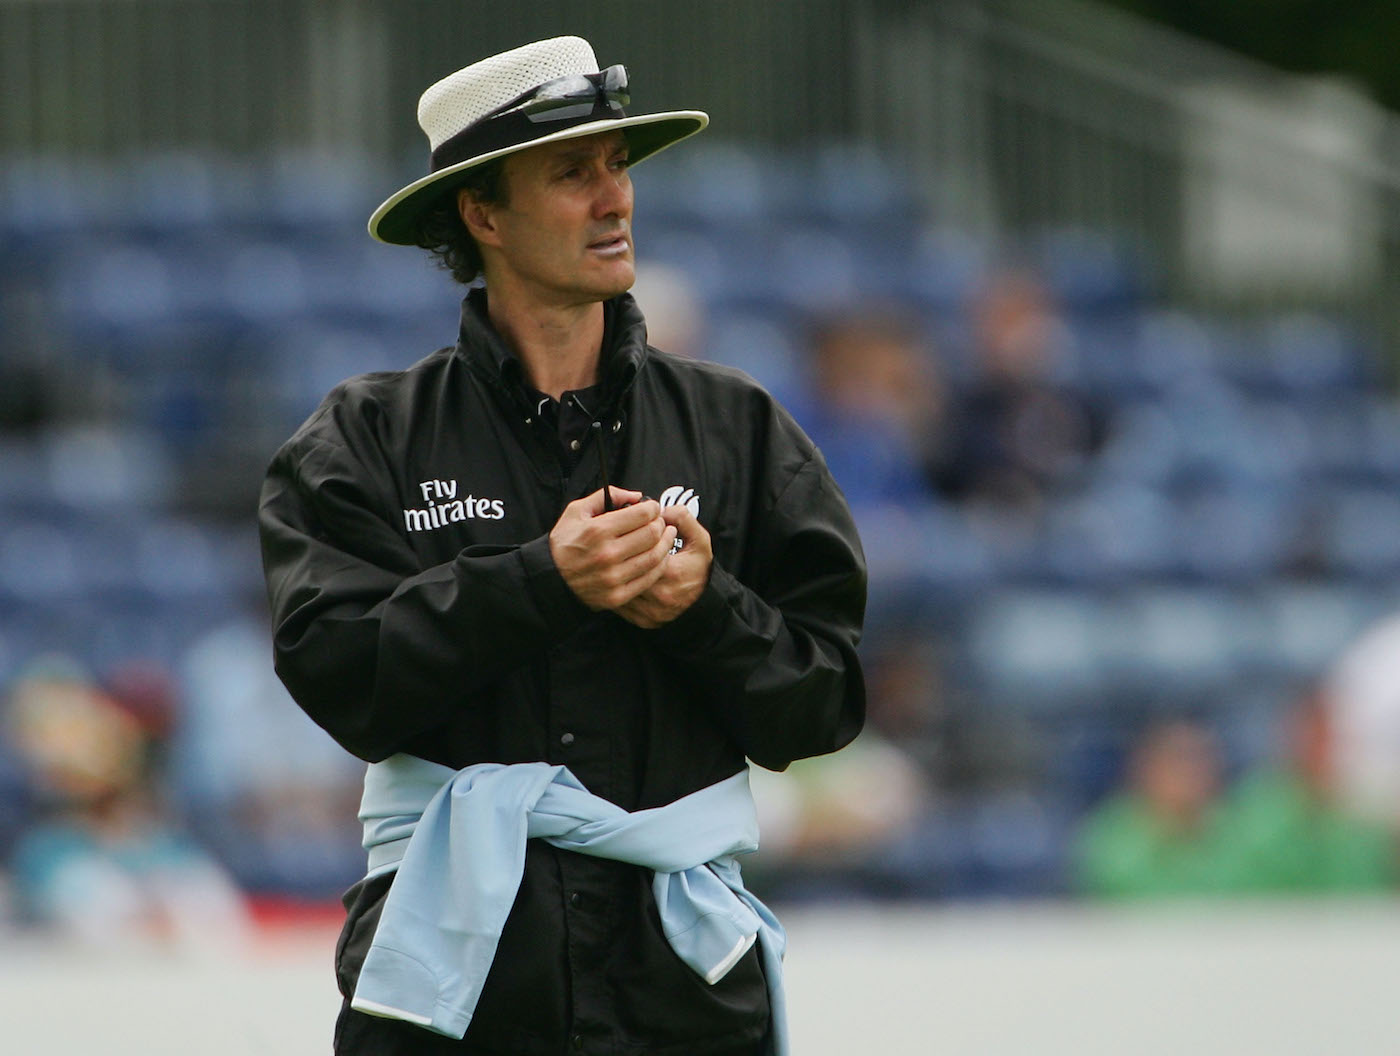 Billy Bowden cuts a sharp figure in all black, boater and sunnies